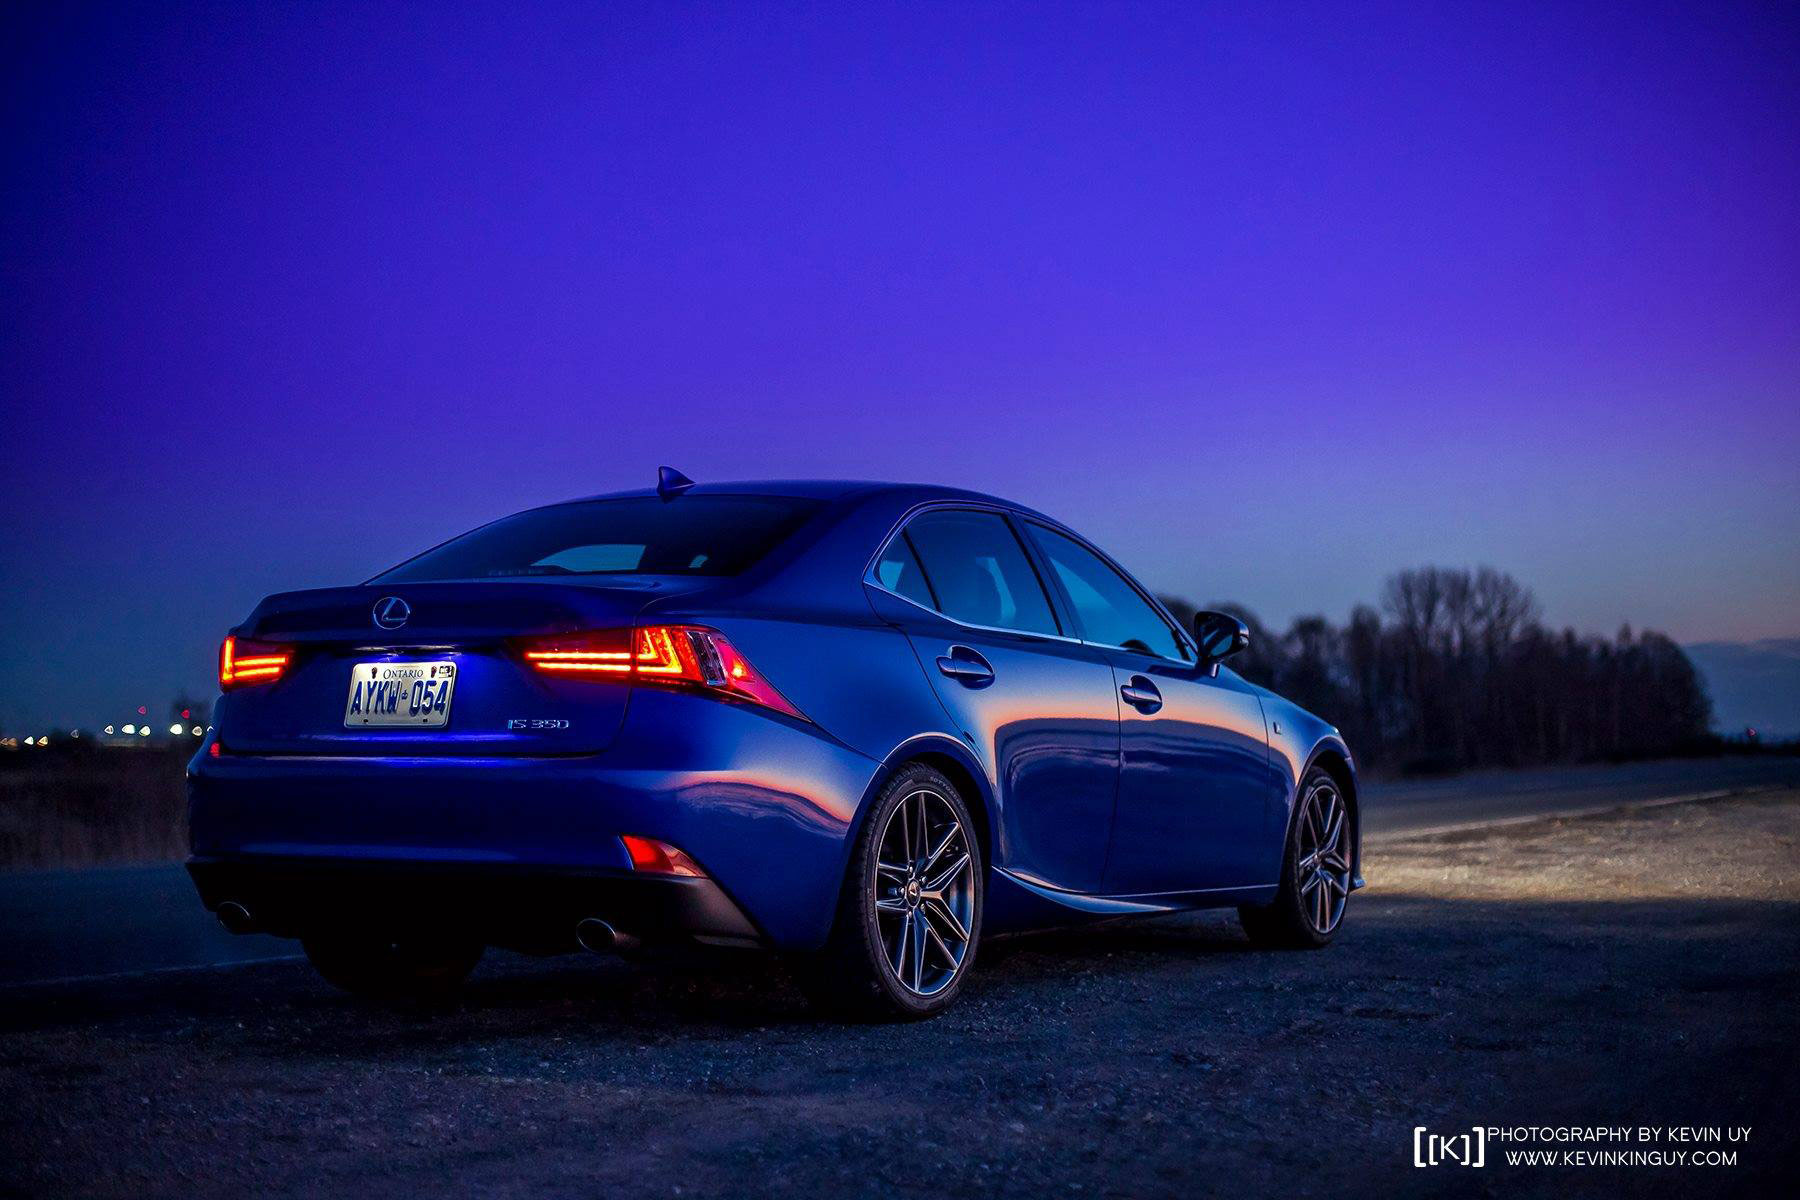 Ultrasonic Blue Lexus Is F Sport At Dusk For Your Desktop